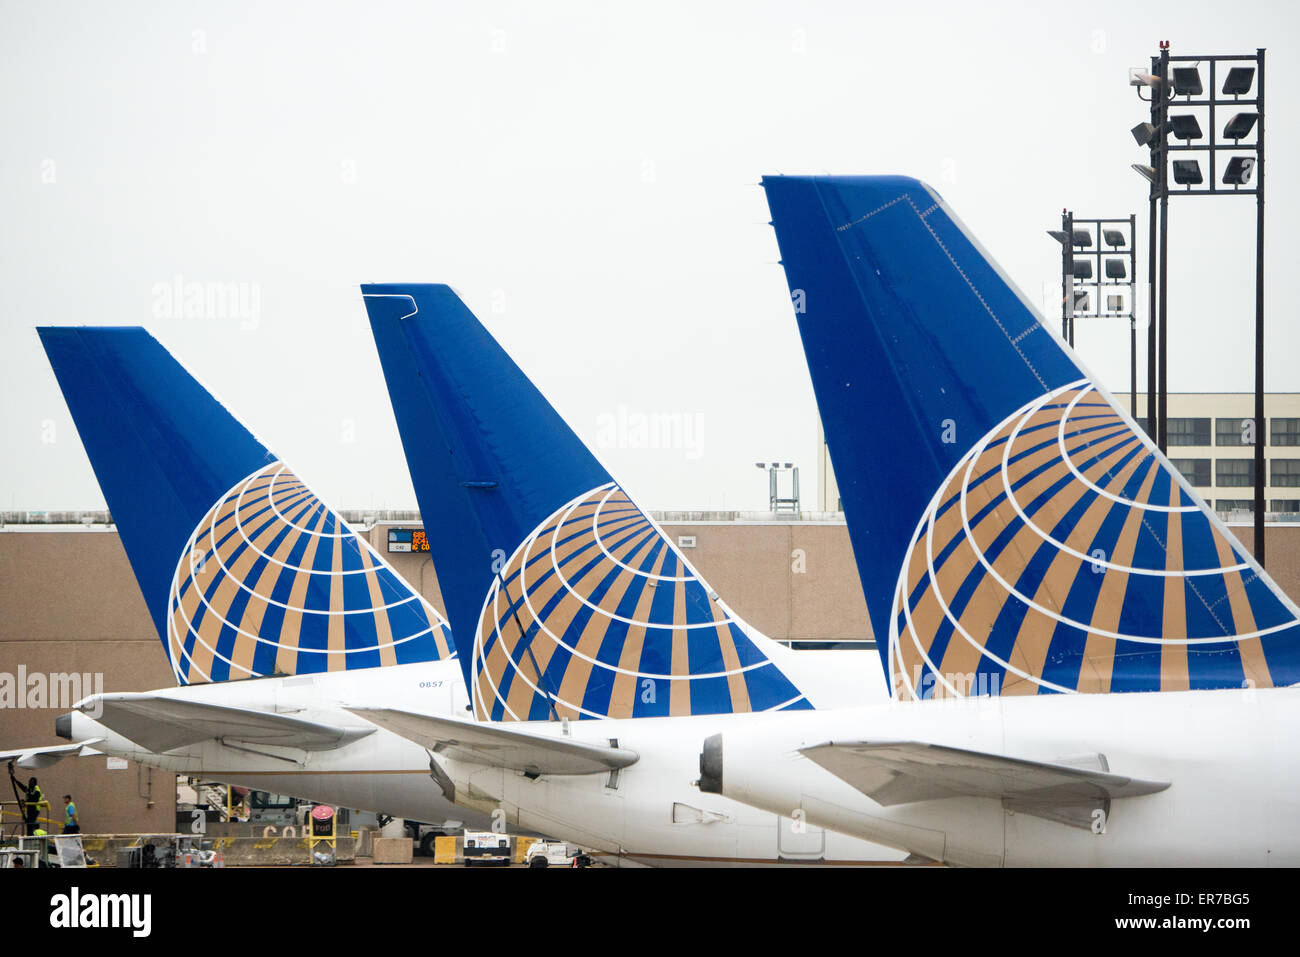 a row of three tails of united airlines planes lined up at the gate